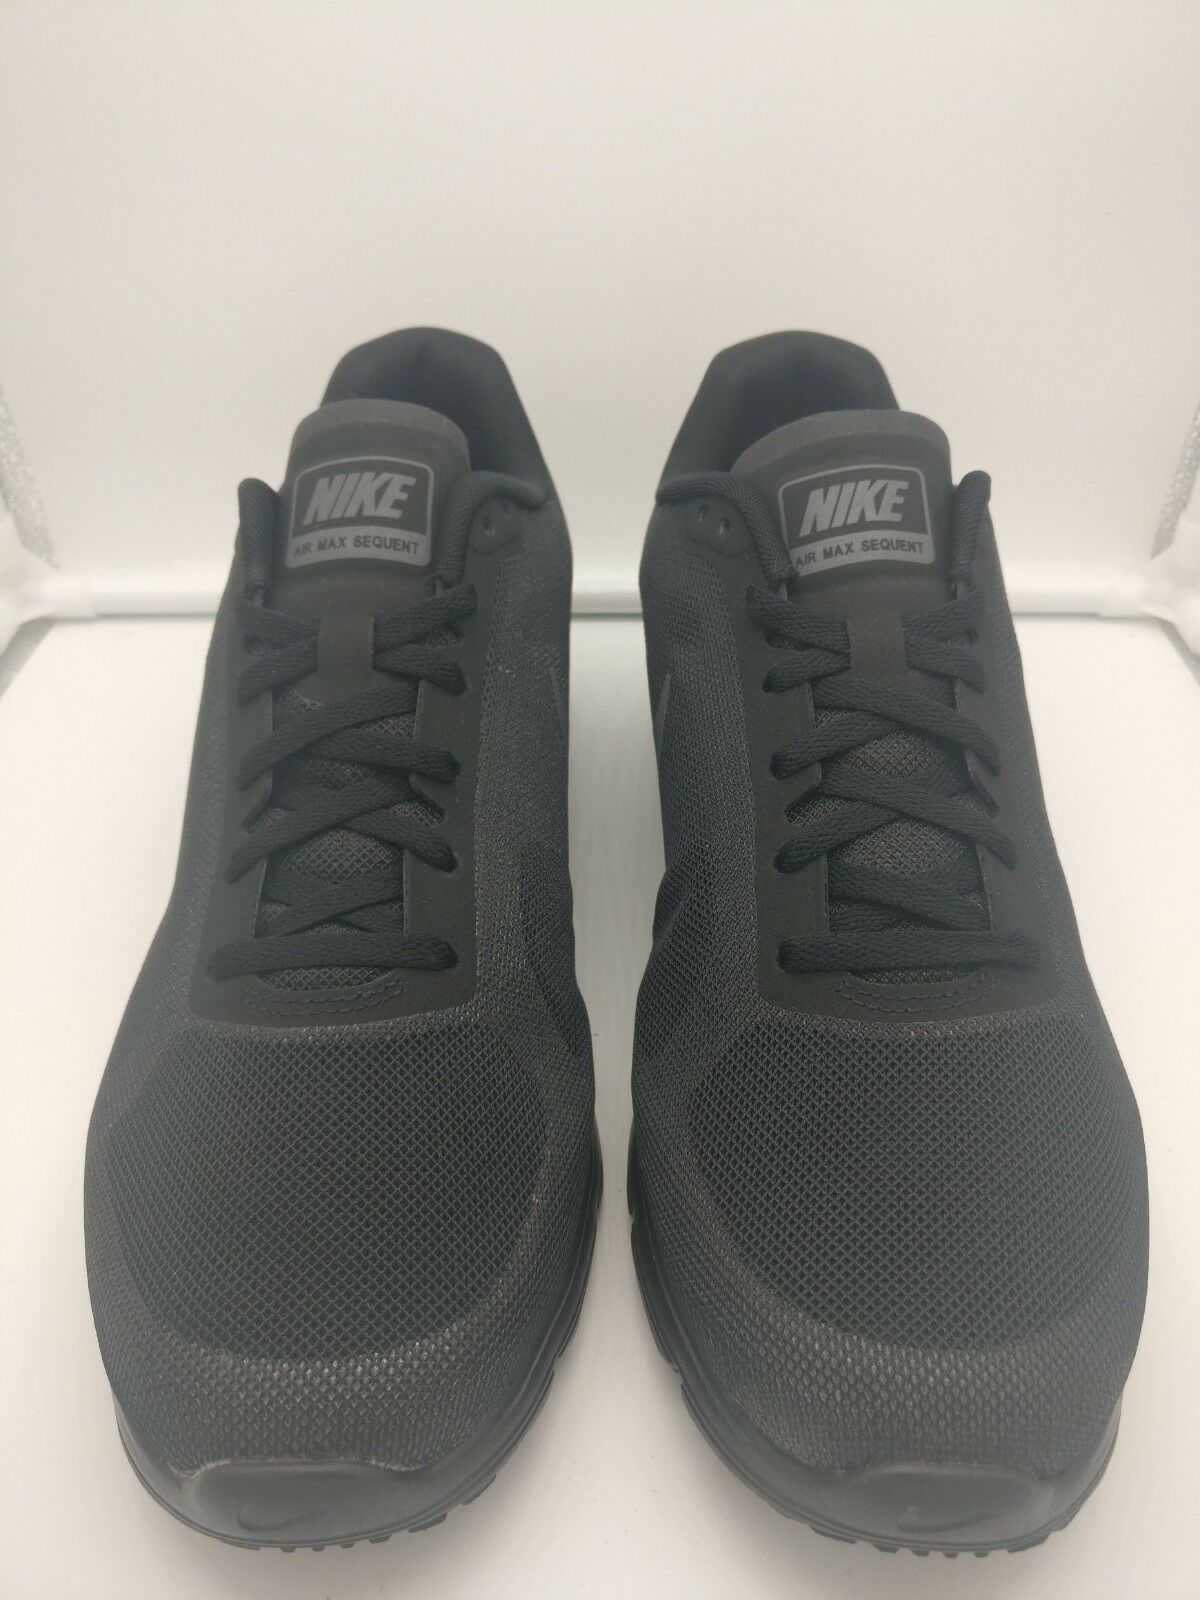 Nike Air Max Gris Sequent7.5 noir Dark  Gris Max  noir 719912-020 567bf5